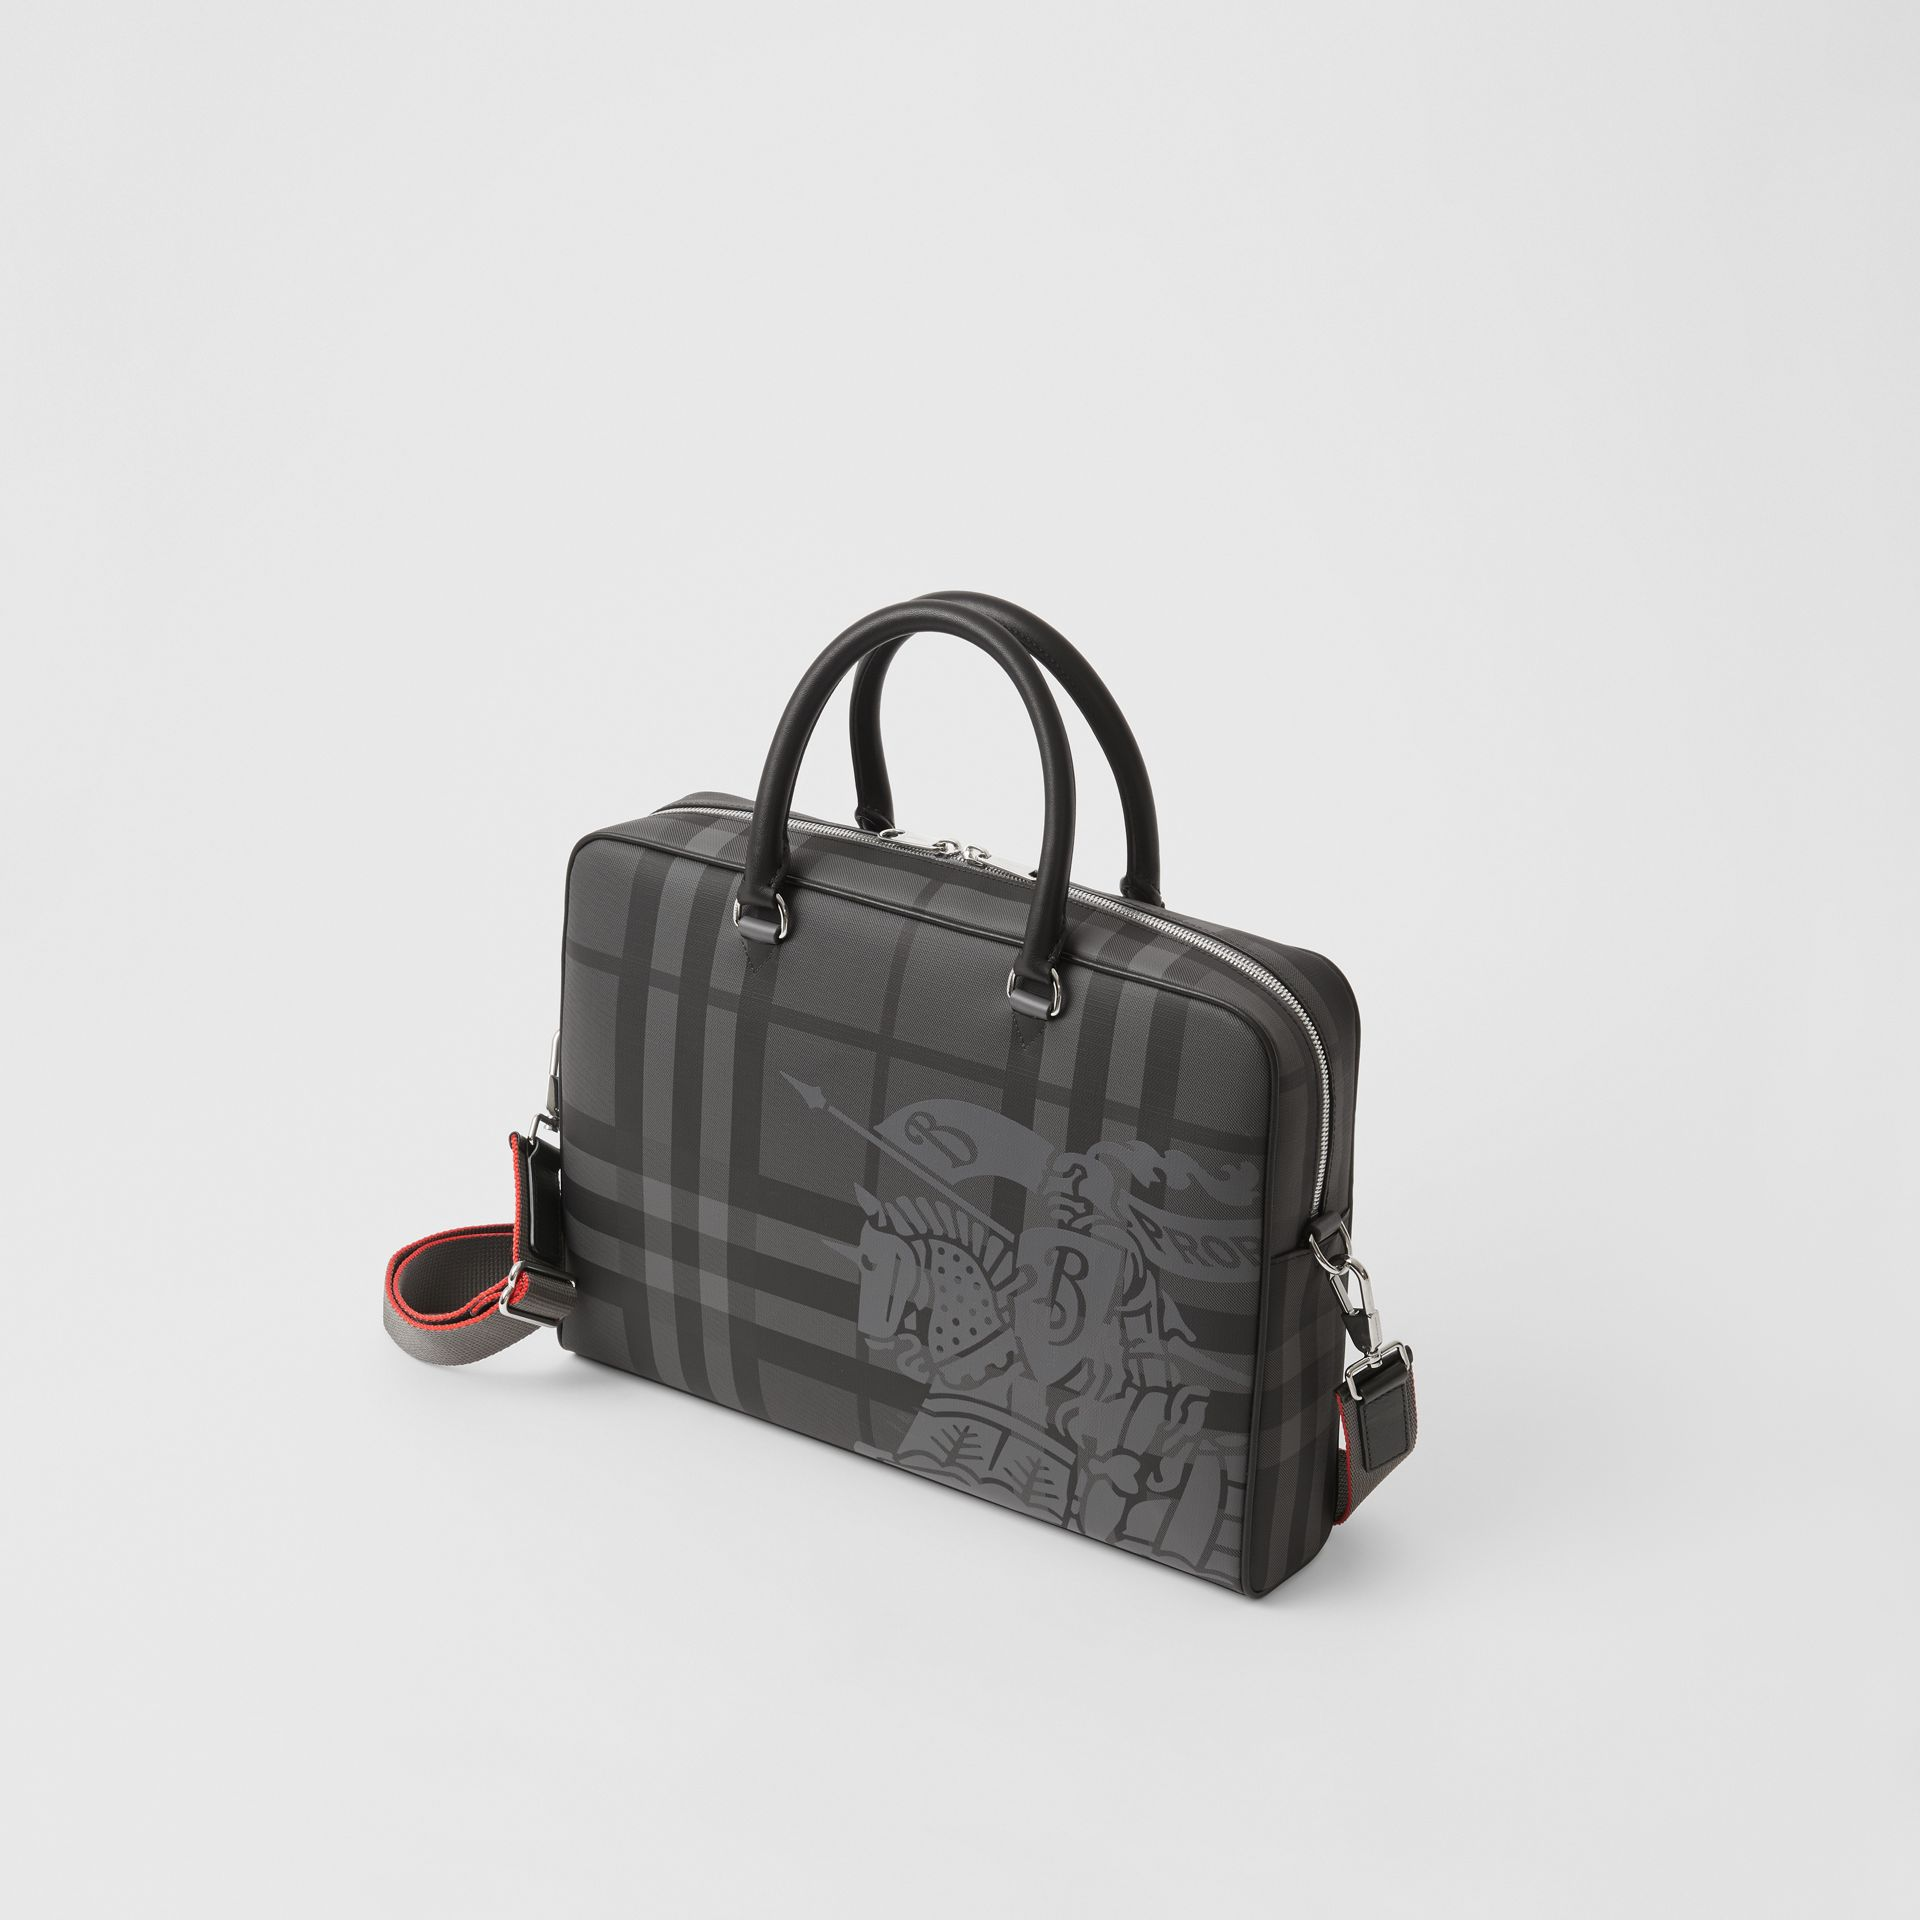 EKD London Check and Leather Briefcase in Charcoal/black - Men | Burberry Australia - gallery image 4